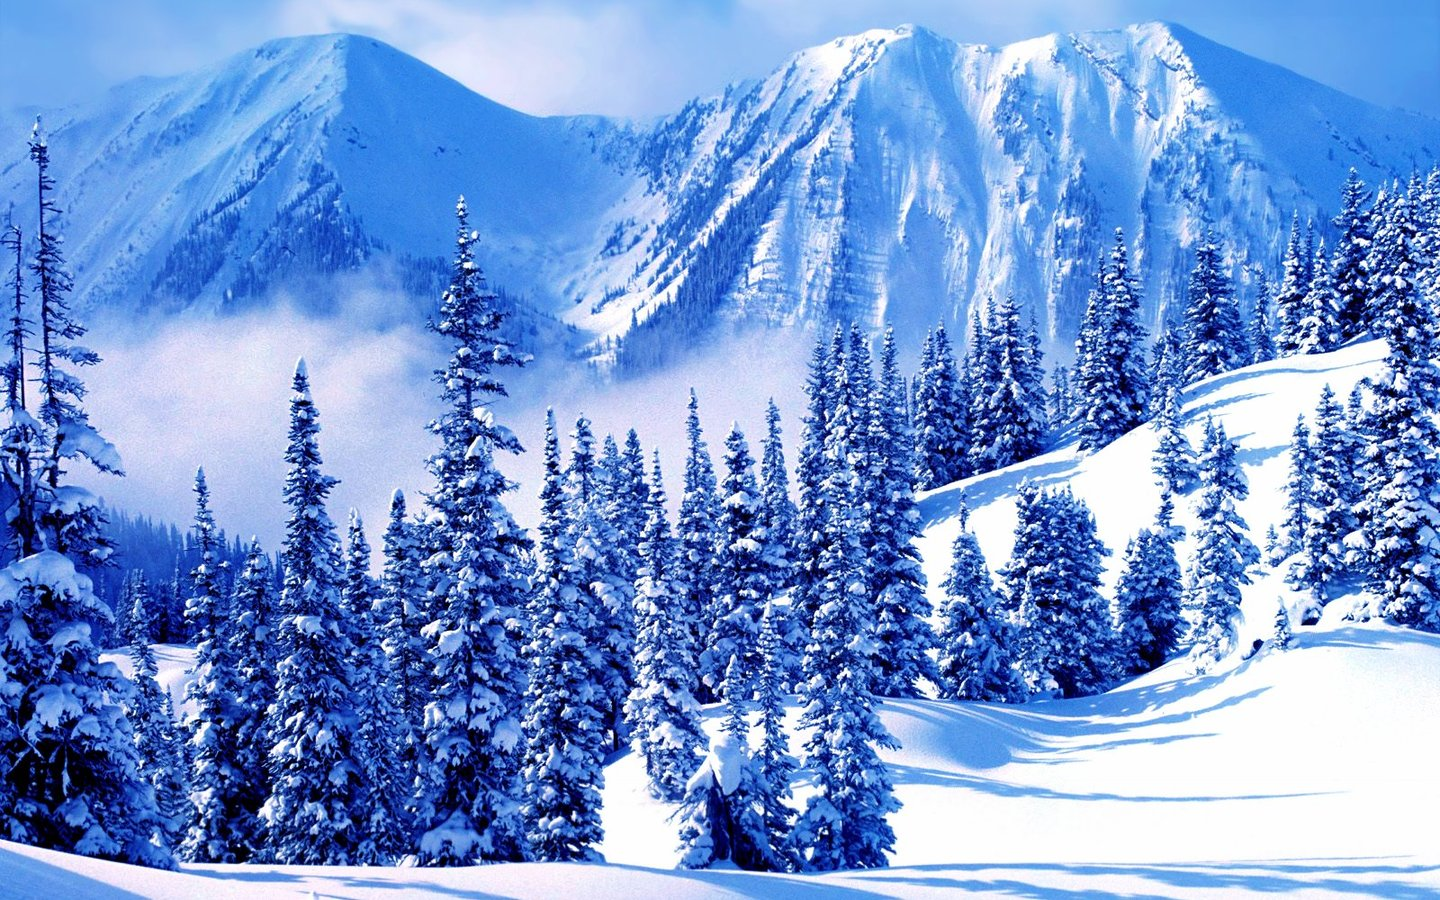 Free HQ Winter Mountains Wallpaper - Free HQ Wallpapers